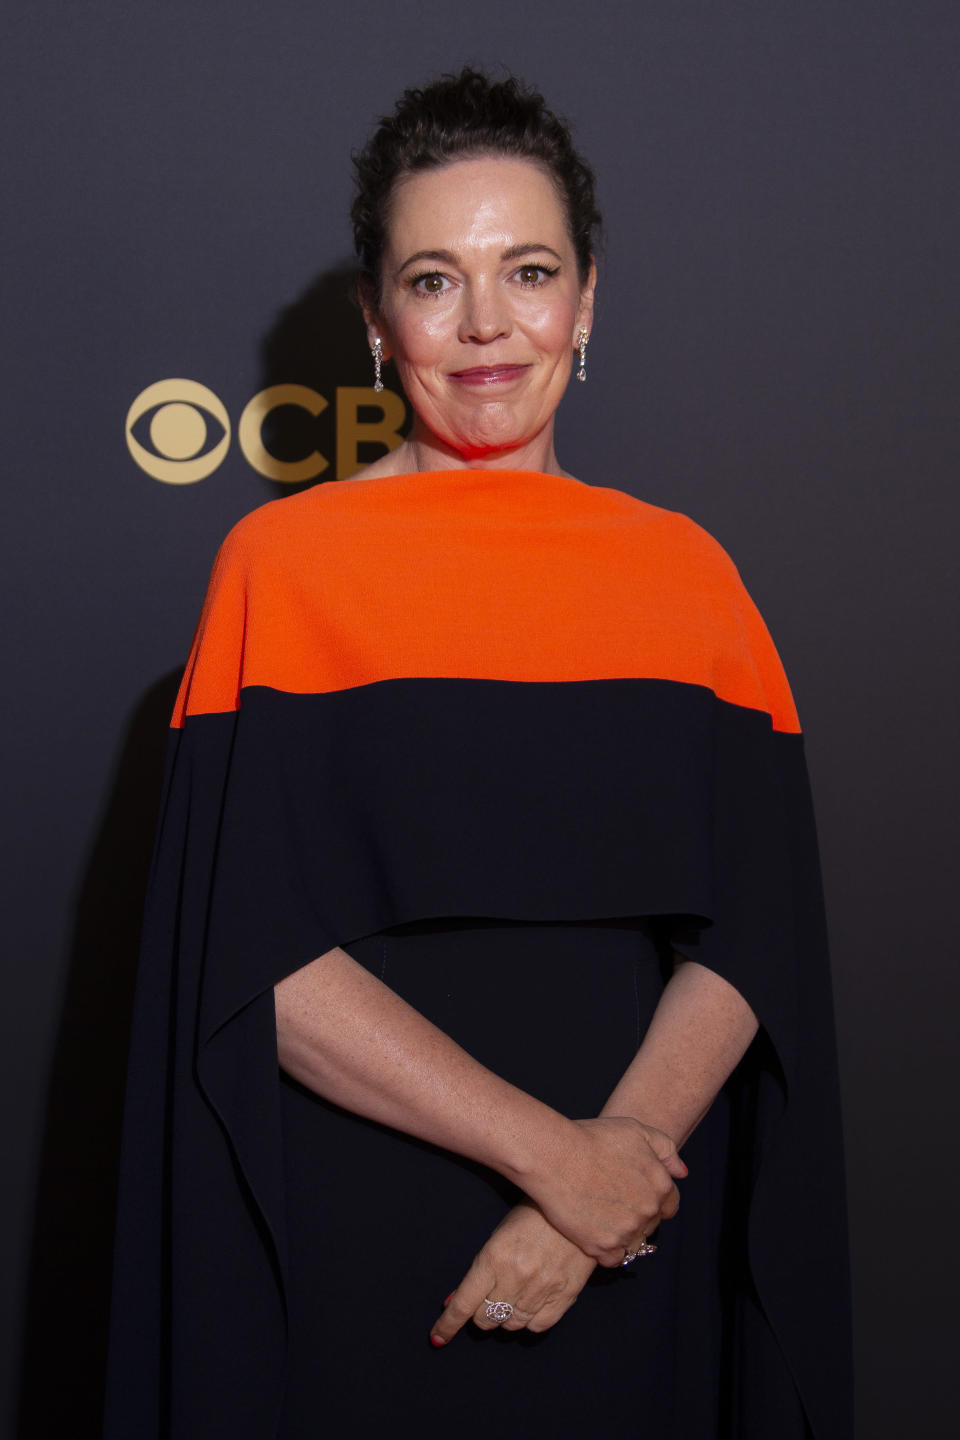 Olivia Colman poses for photographers as she arrives for the Netflix Celebration of the 73rd Primetime Emmy Awards in central London on Sept. 19, 2021. - Credit: Joel C Ryan/Invision/AP